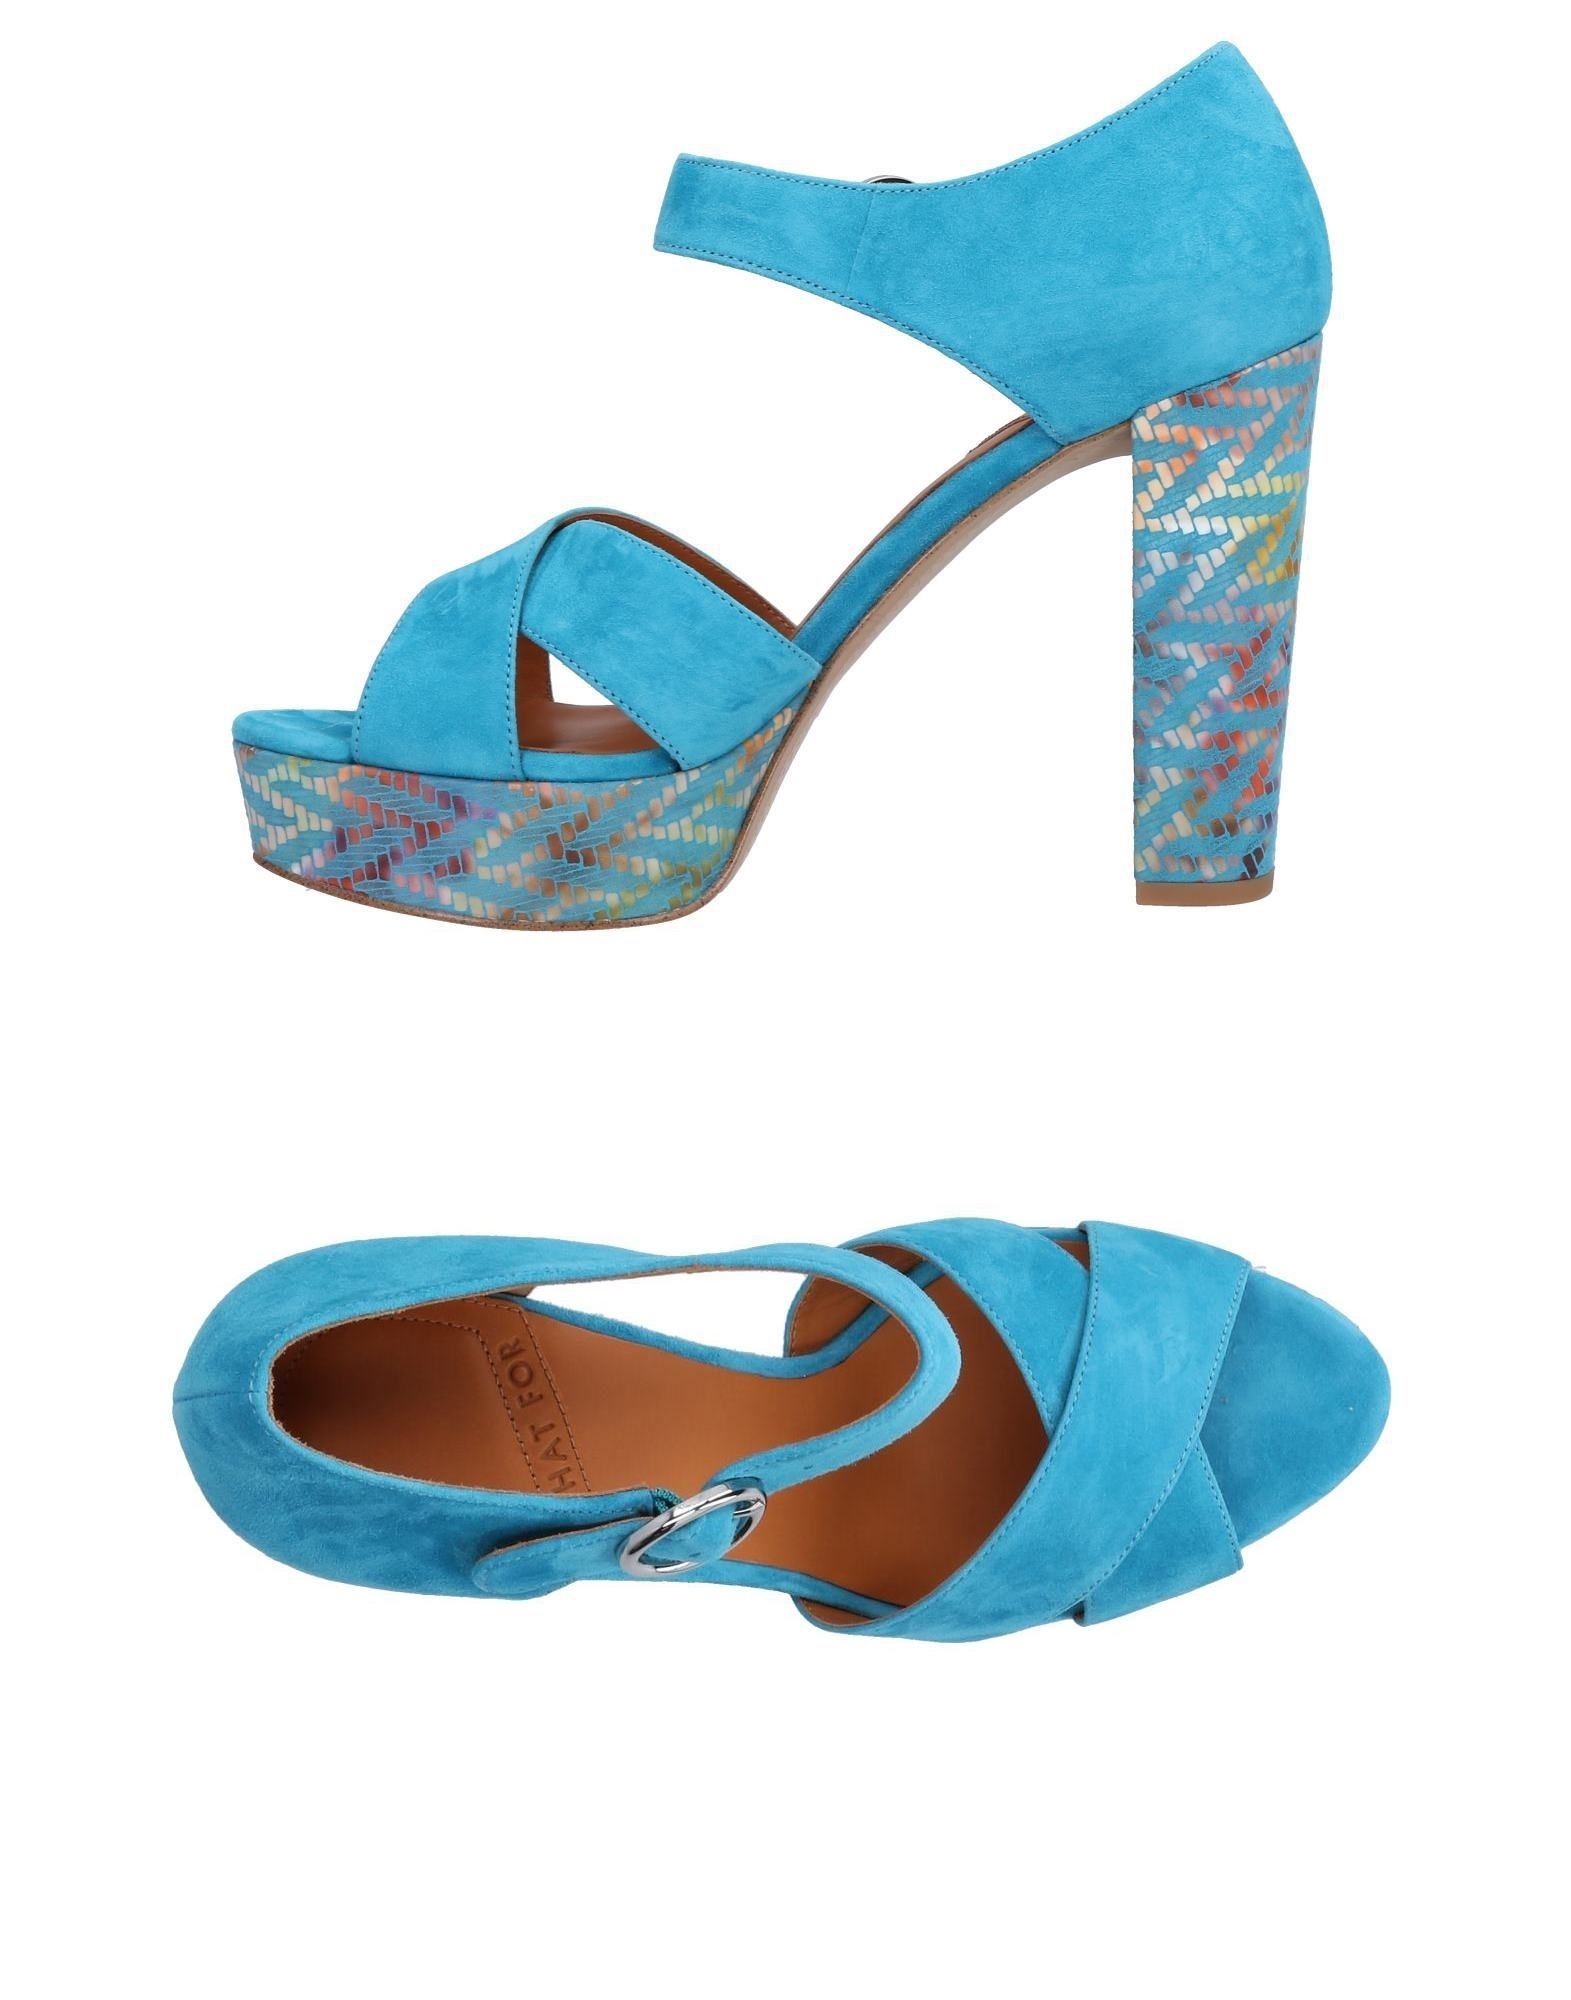 Sandales What For Femme - Sandales What For   - 11505486NM